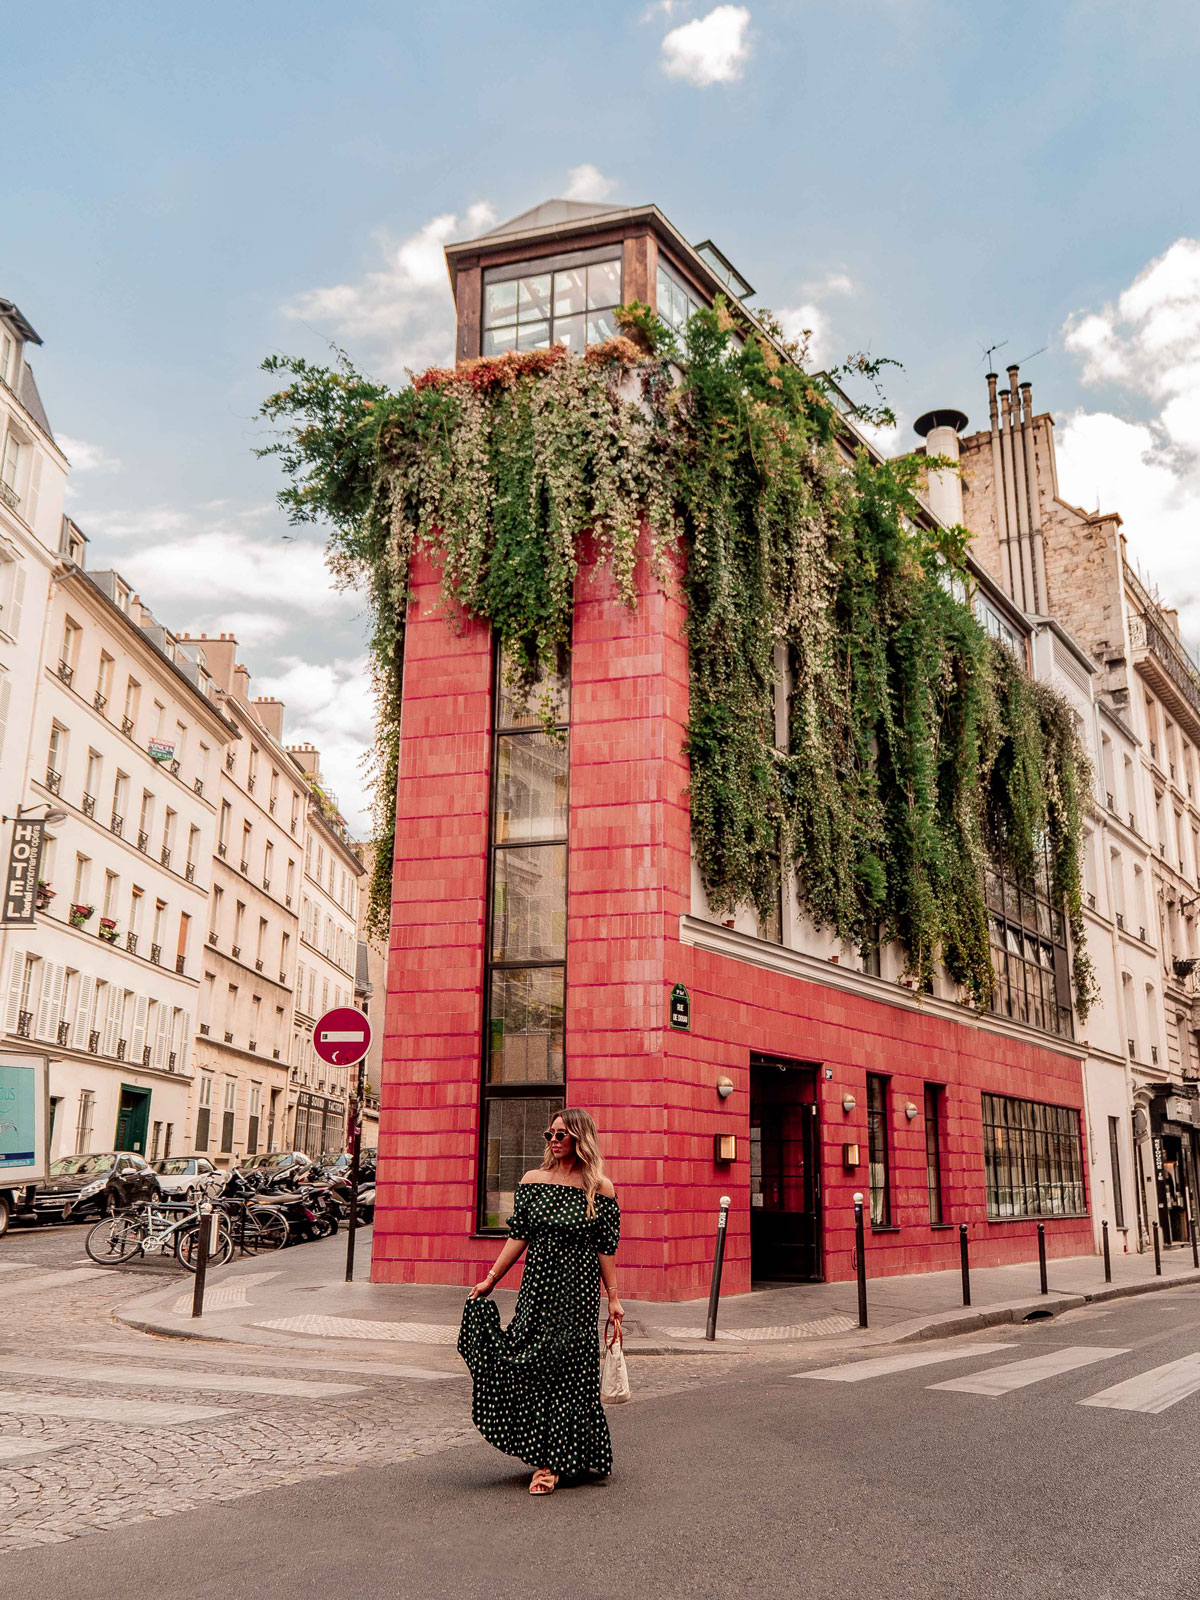 20 Best Paris Photography Locations Instagram Spots Pink Mamma @kelseyinlondon Kelsey Heinrichs